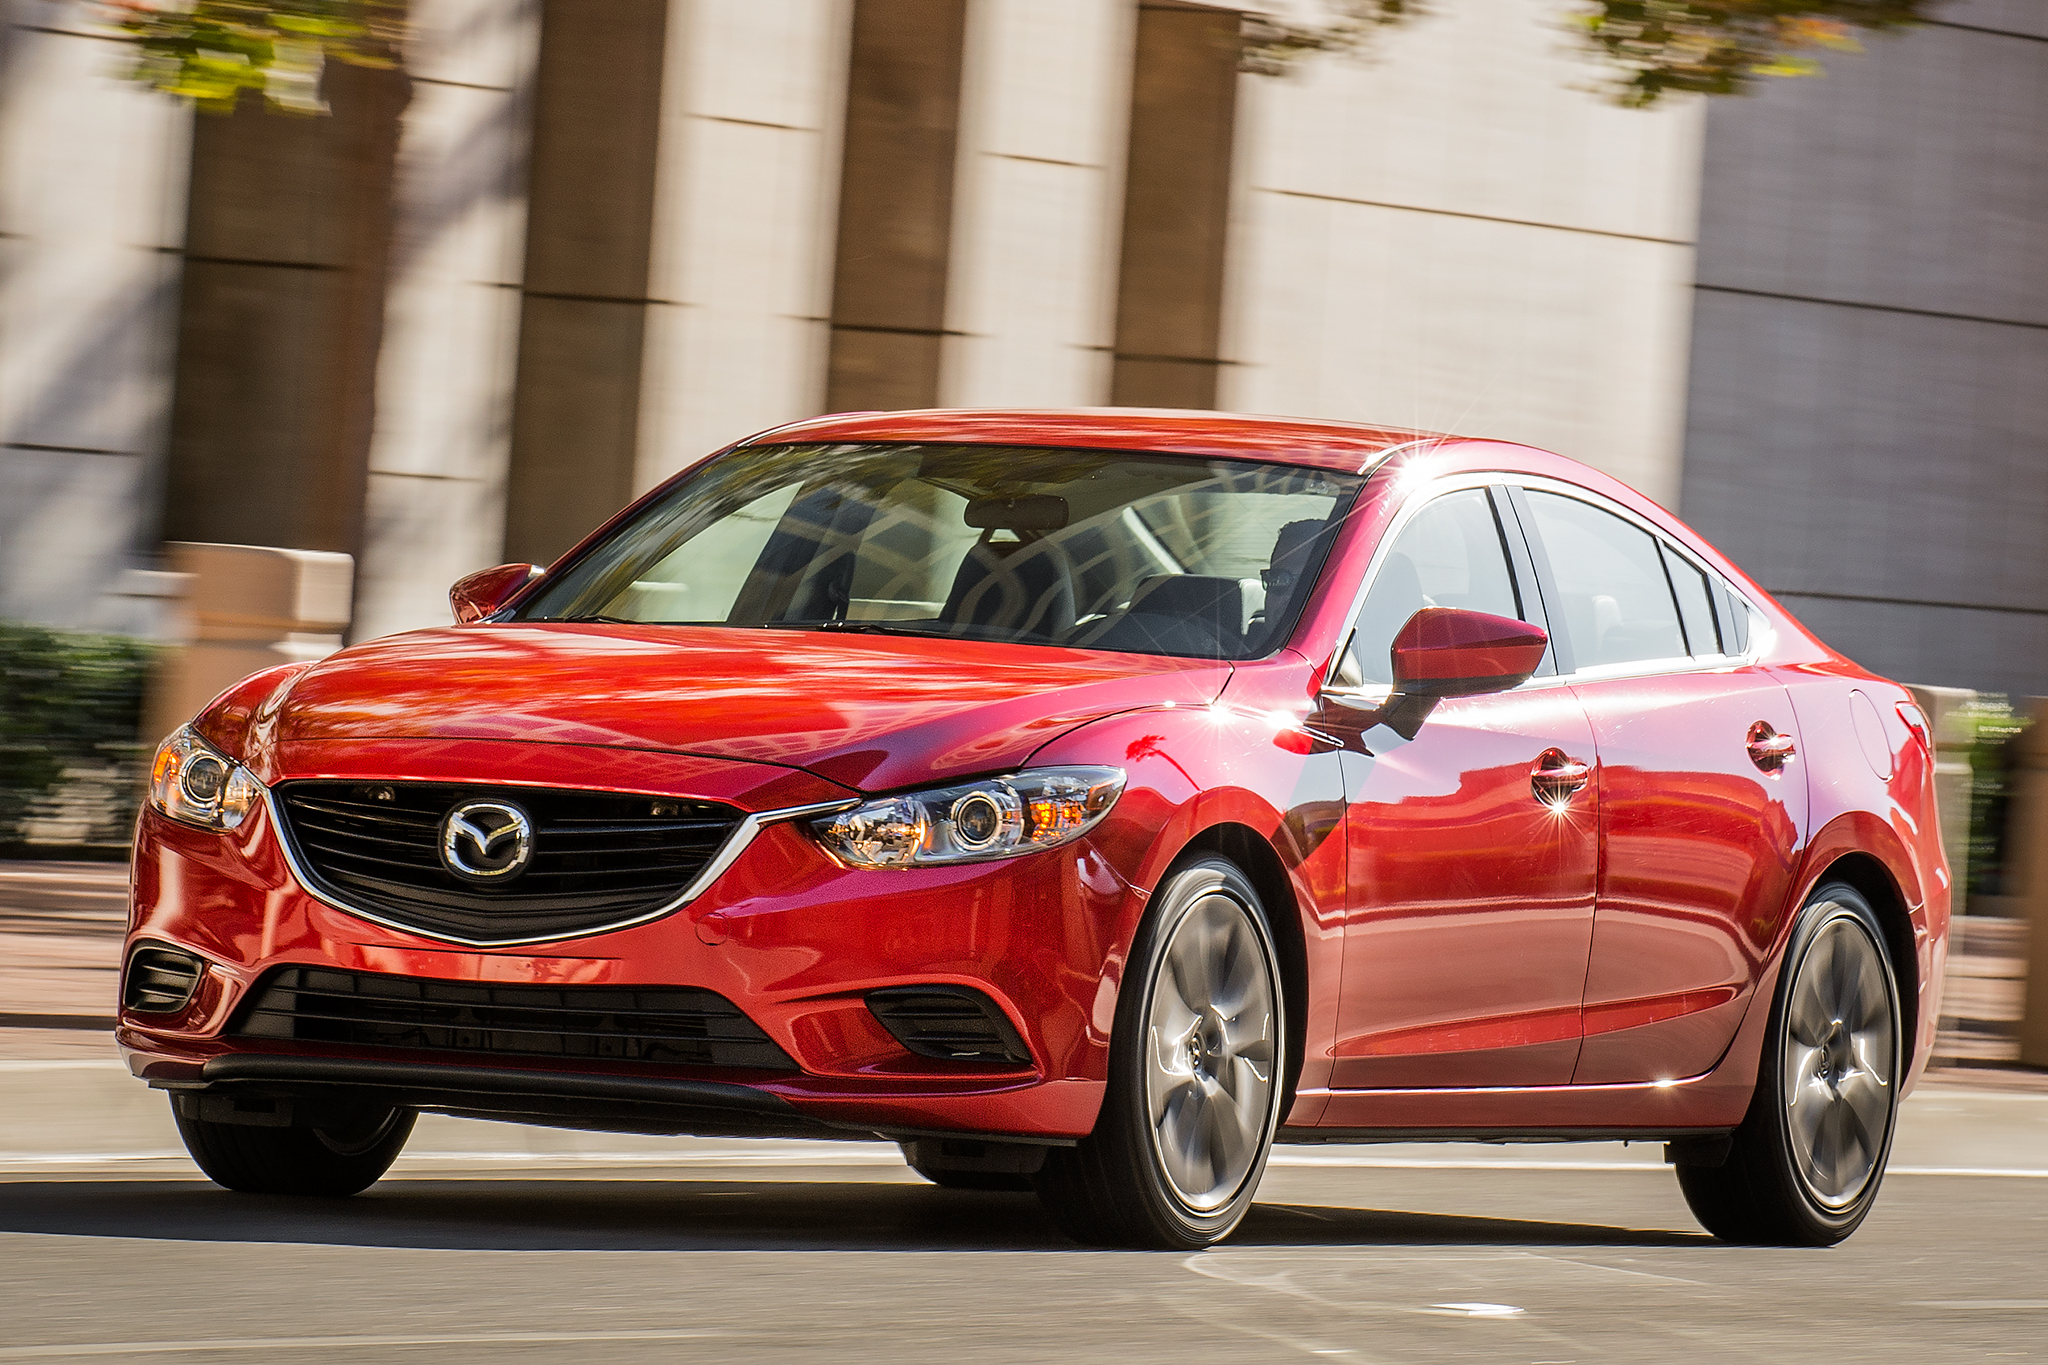 2014 mazda6 i touring long-term arrival - motortrend